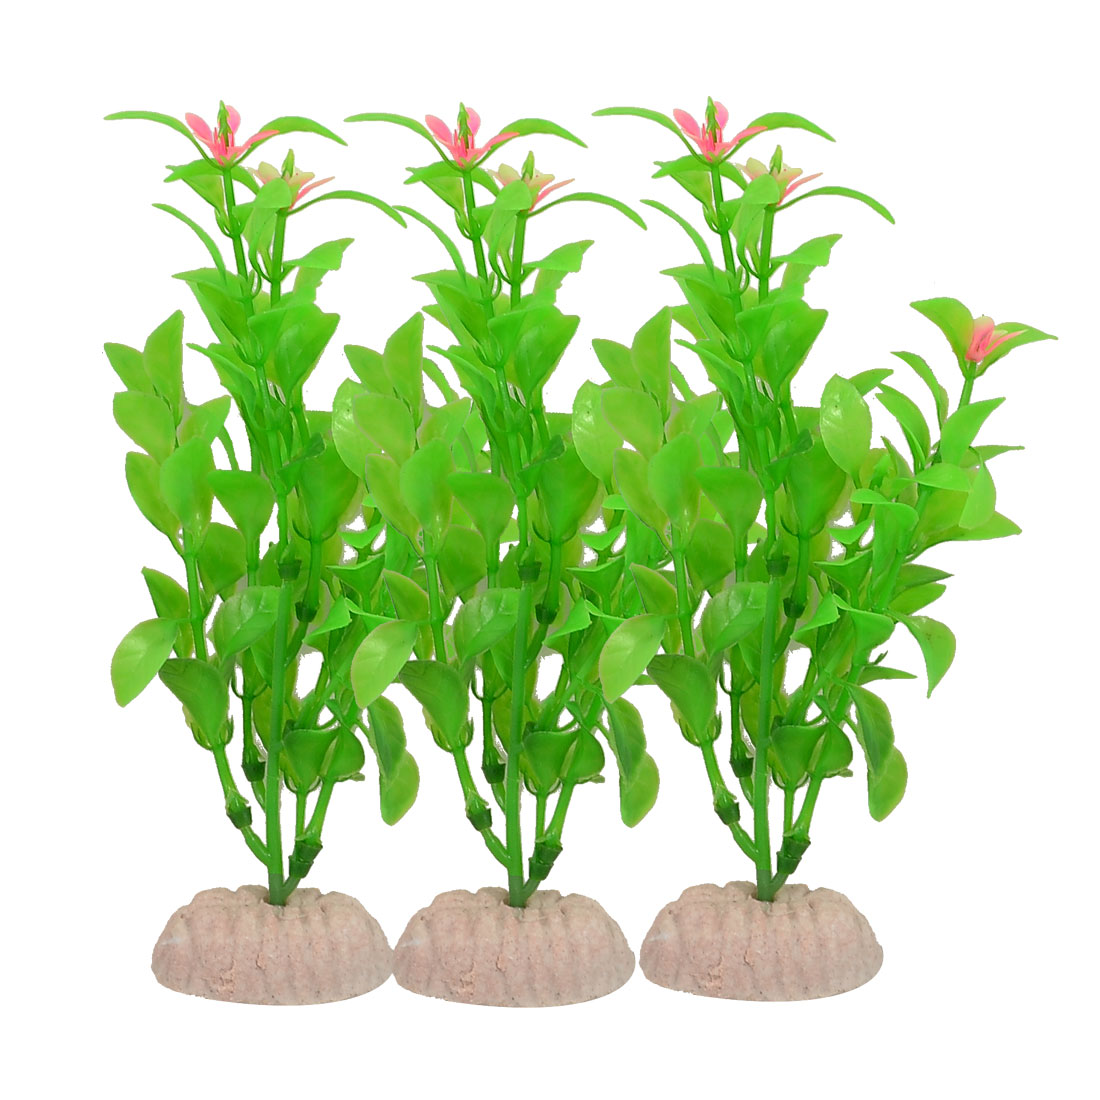 "3 Pcs 5.1"" High Green Leaves Pink Flower Detail Simulation Plant Decor"